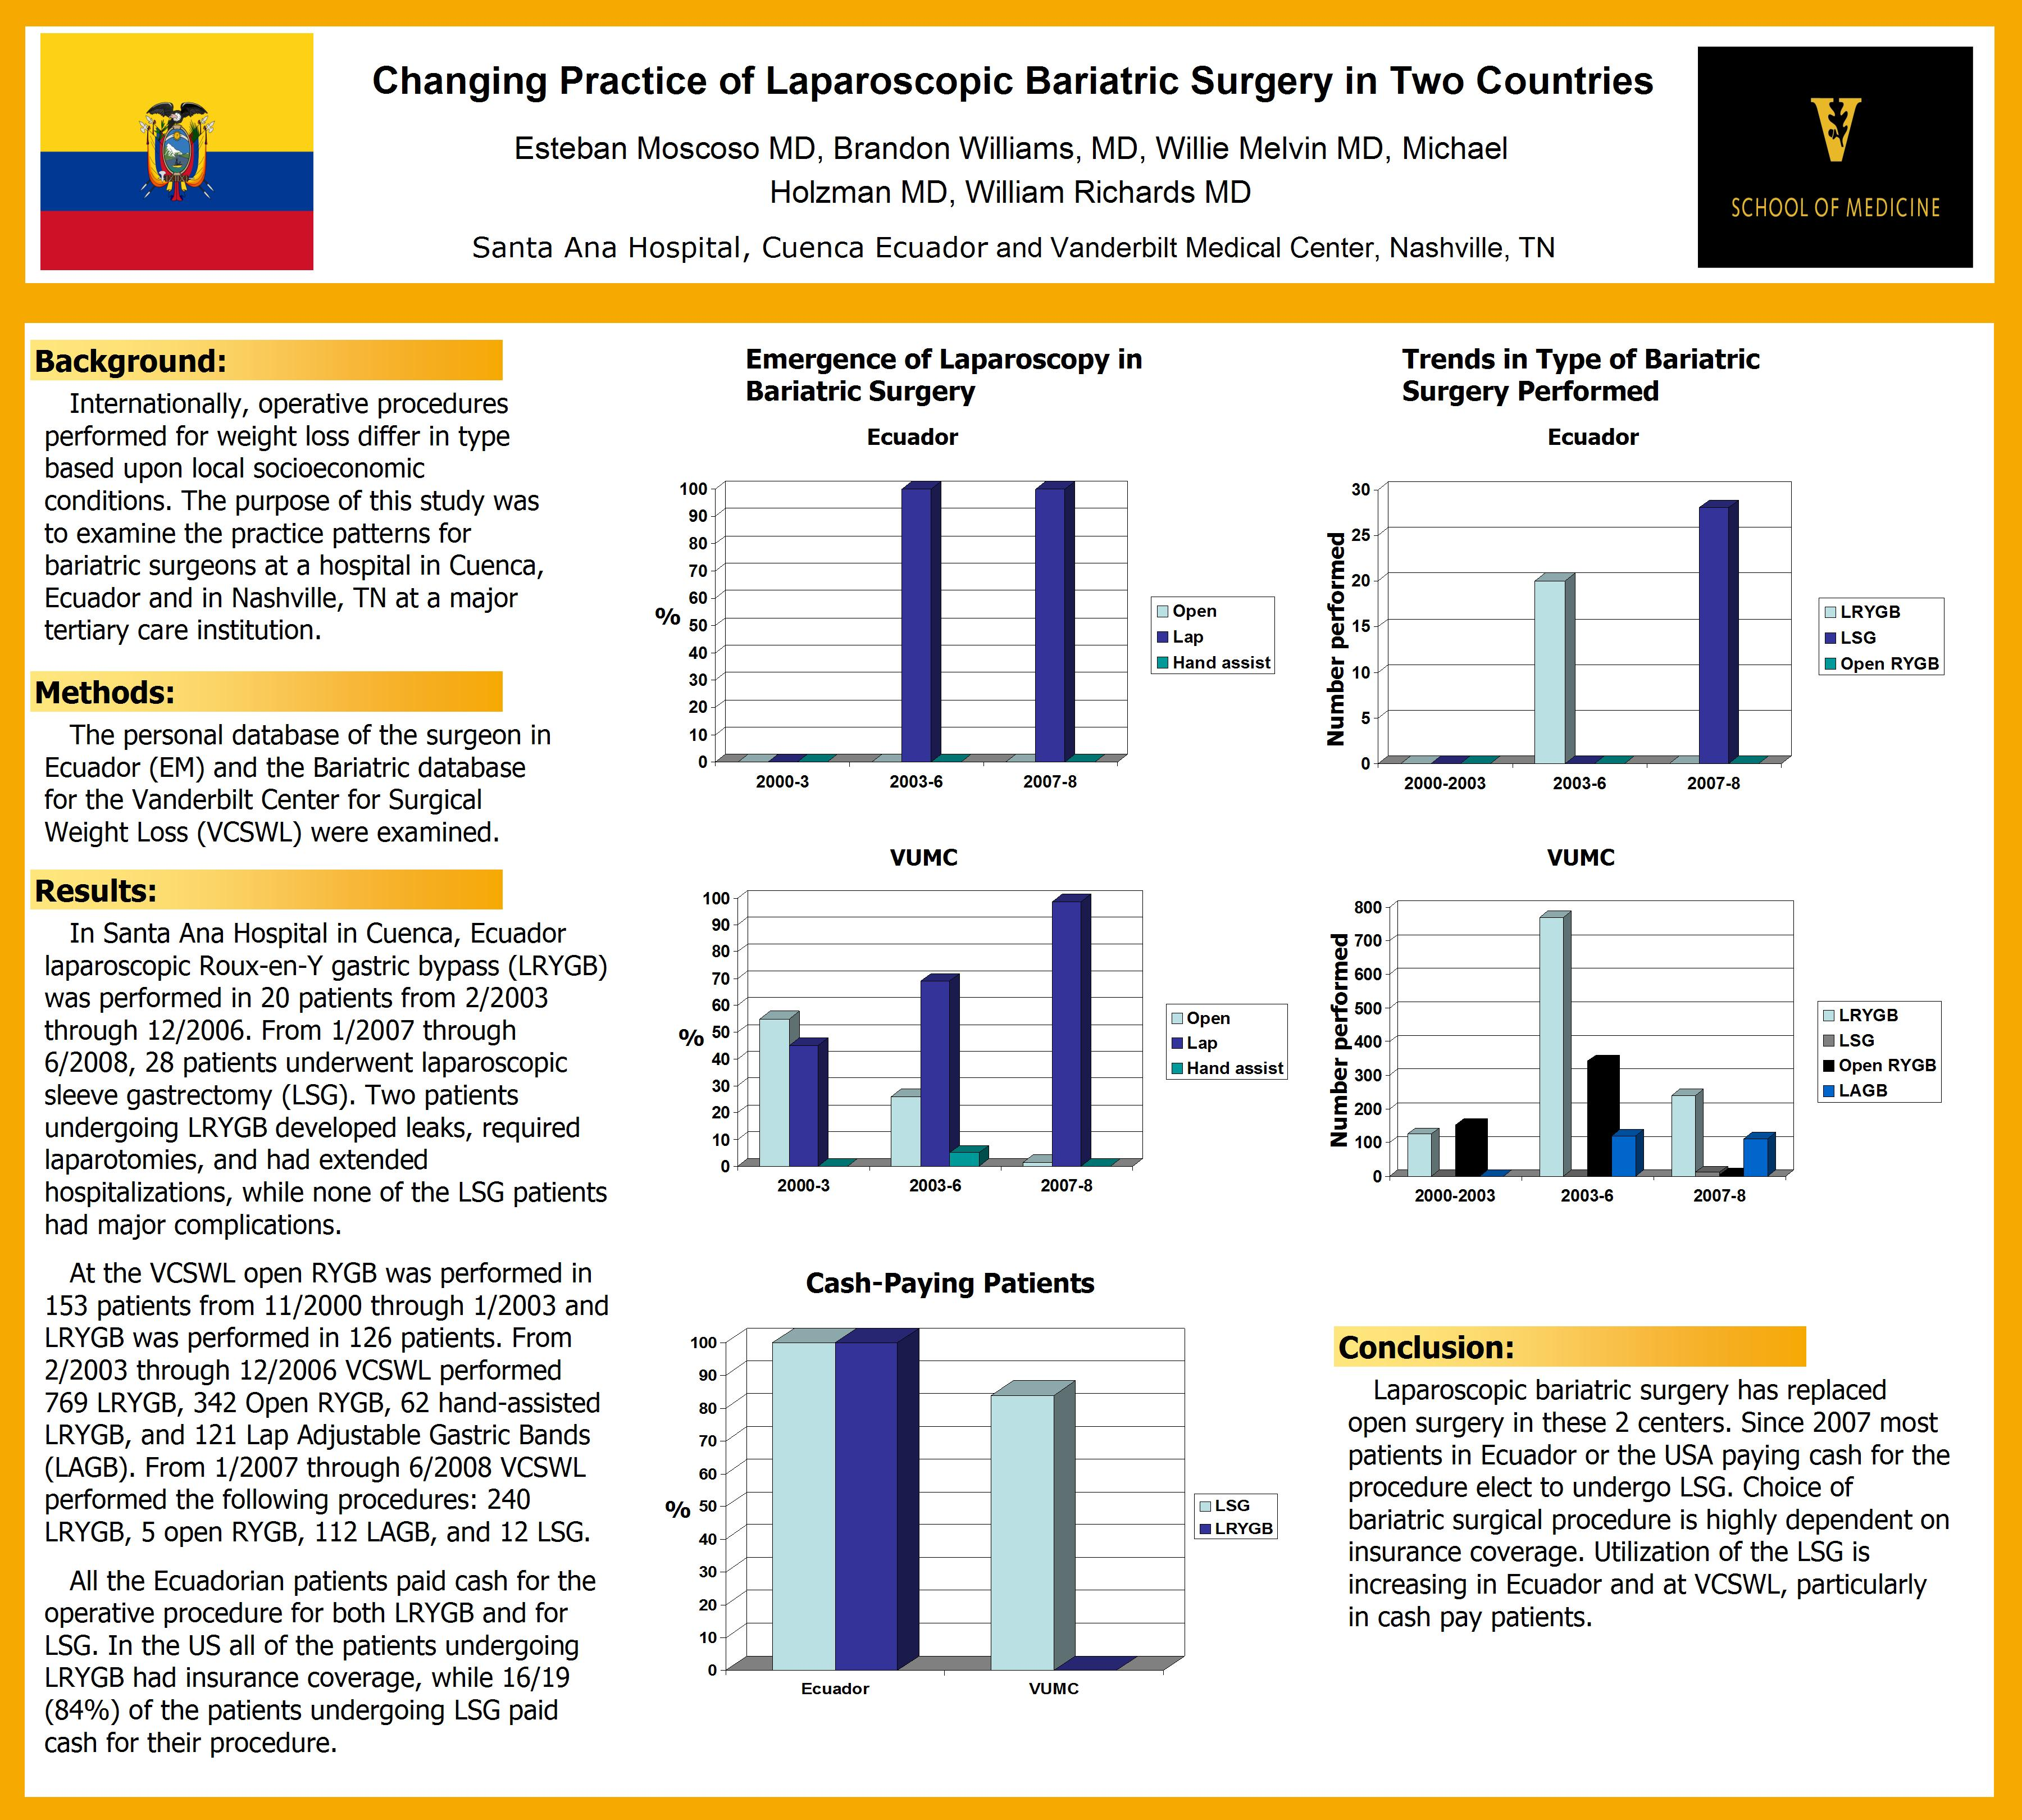 Changing Practice Of Laparoscopic Bariatric Surgery In 2 Countries